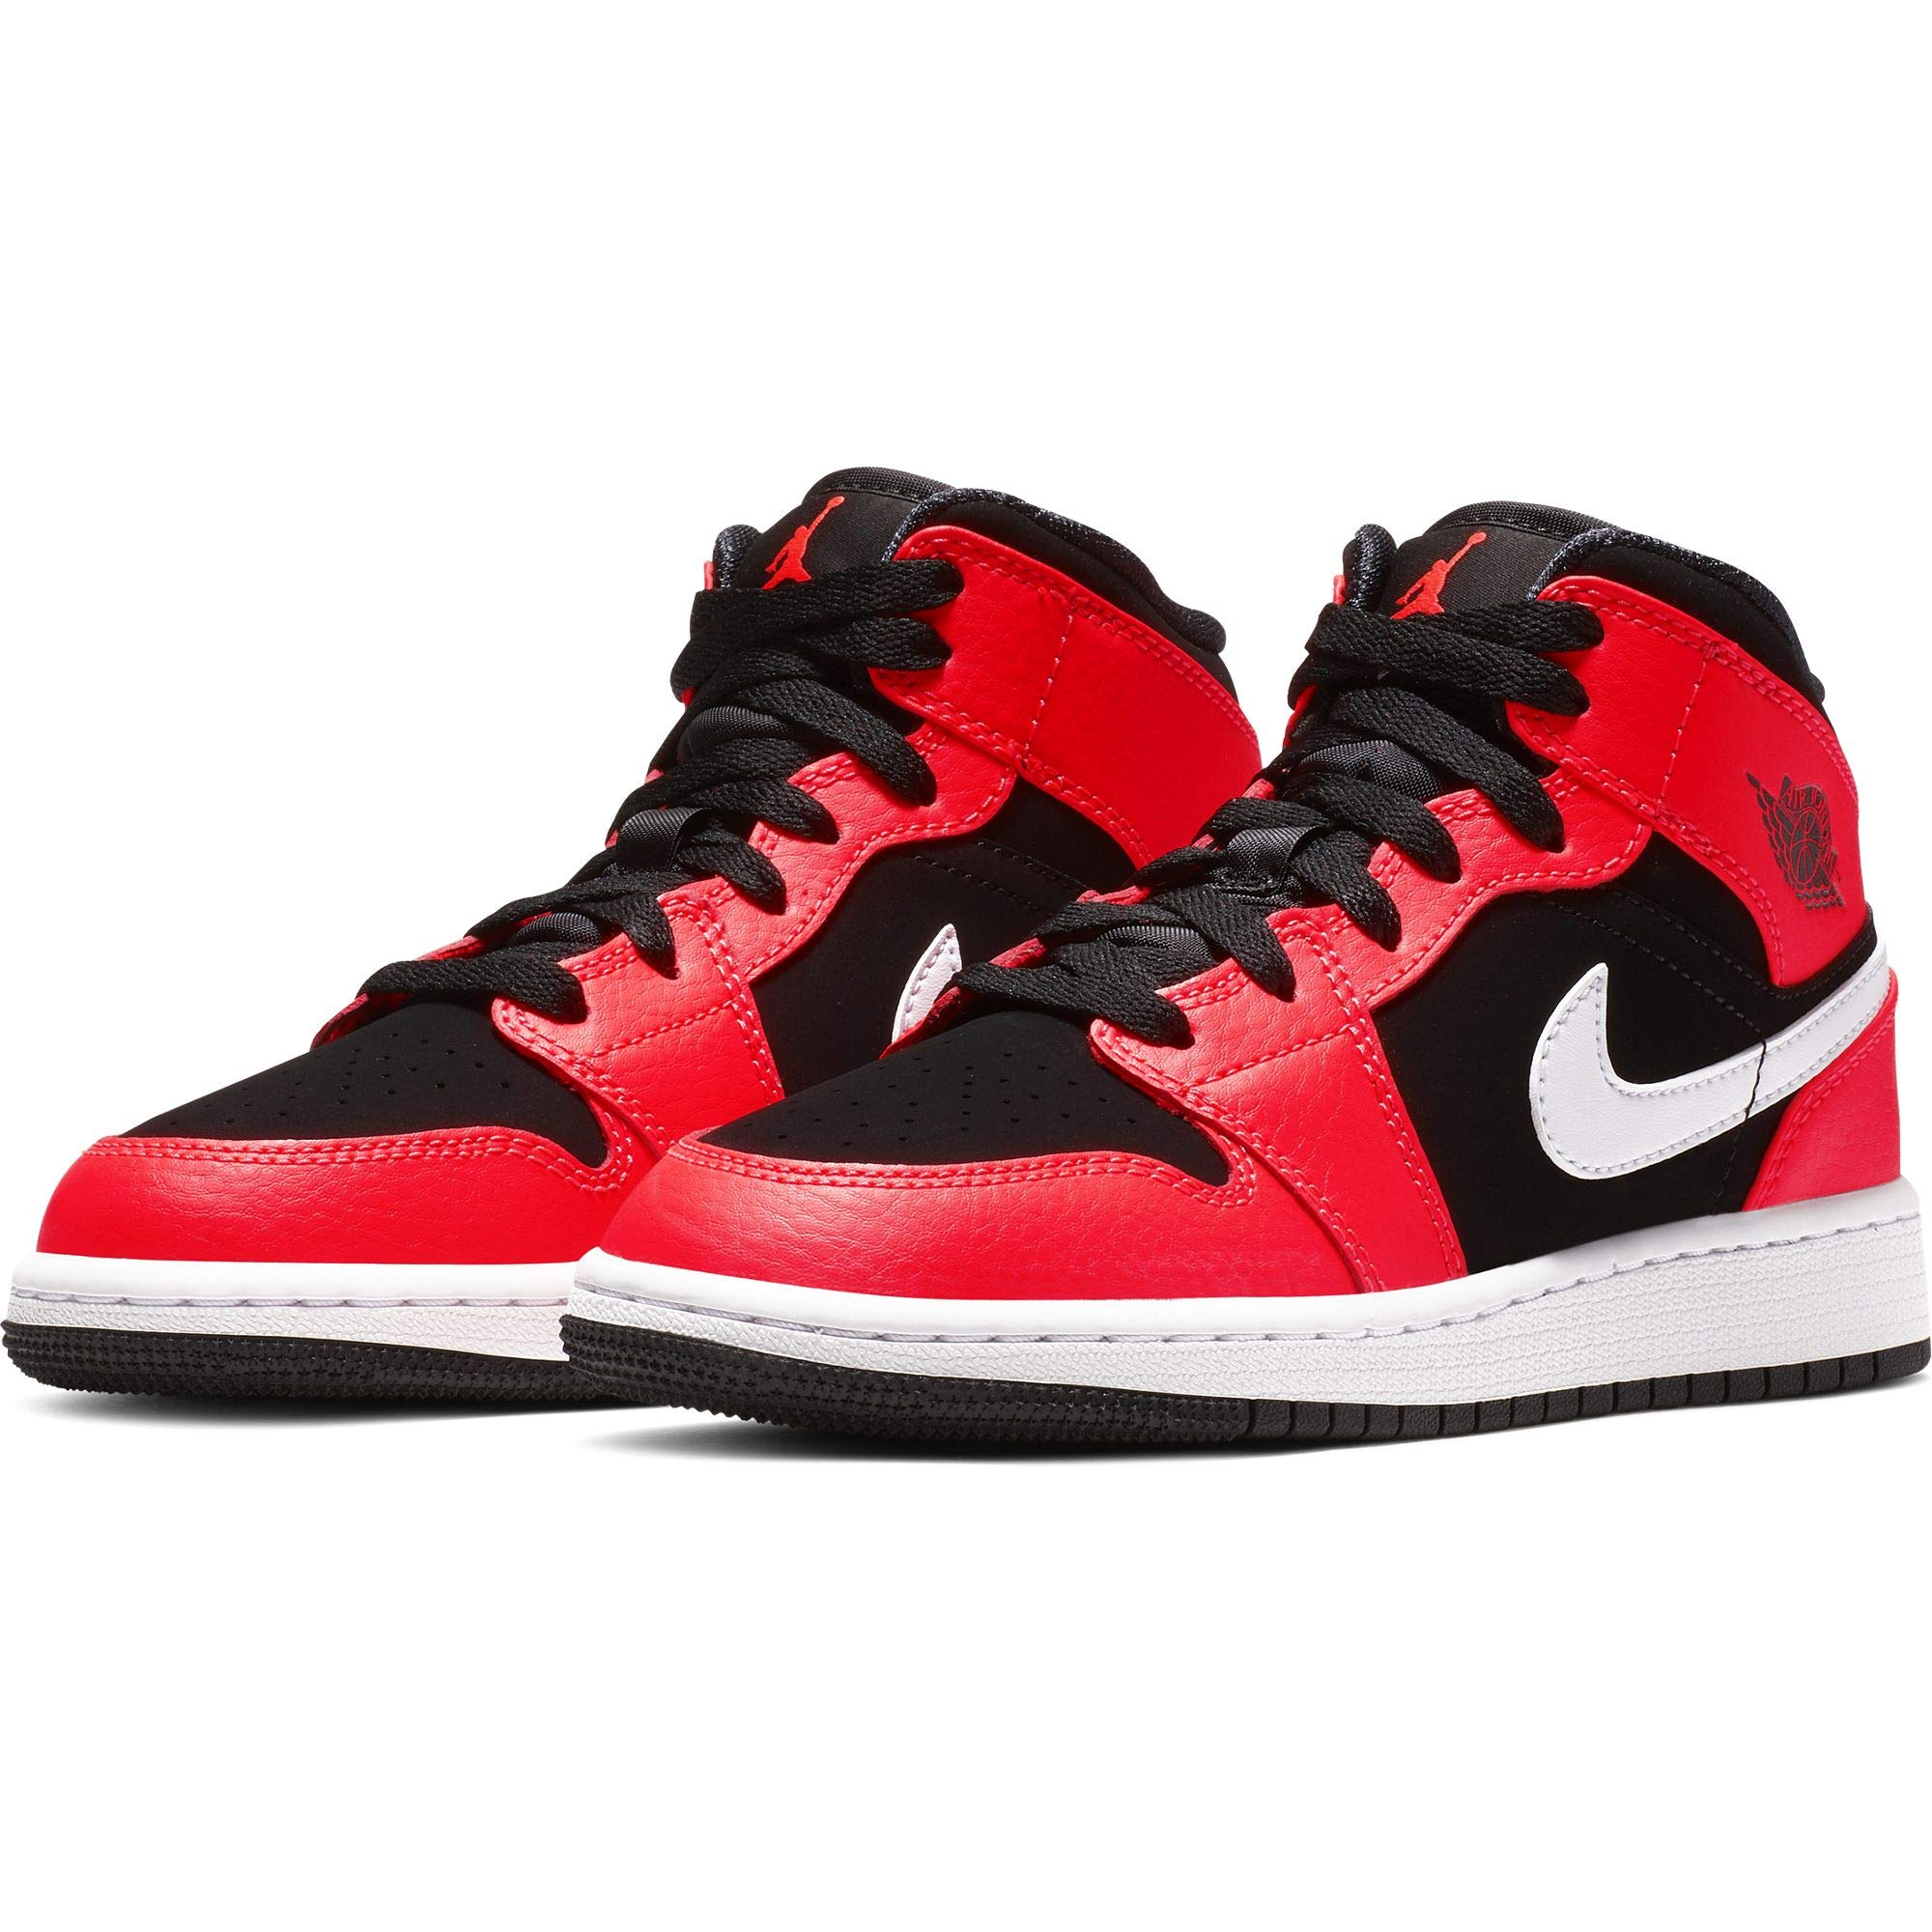 Jordan Boy's Air Jordan 1 Mid (GS) Basketball Shoe, Black/Infrared 23/White, 5 M US Big Kid